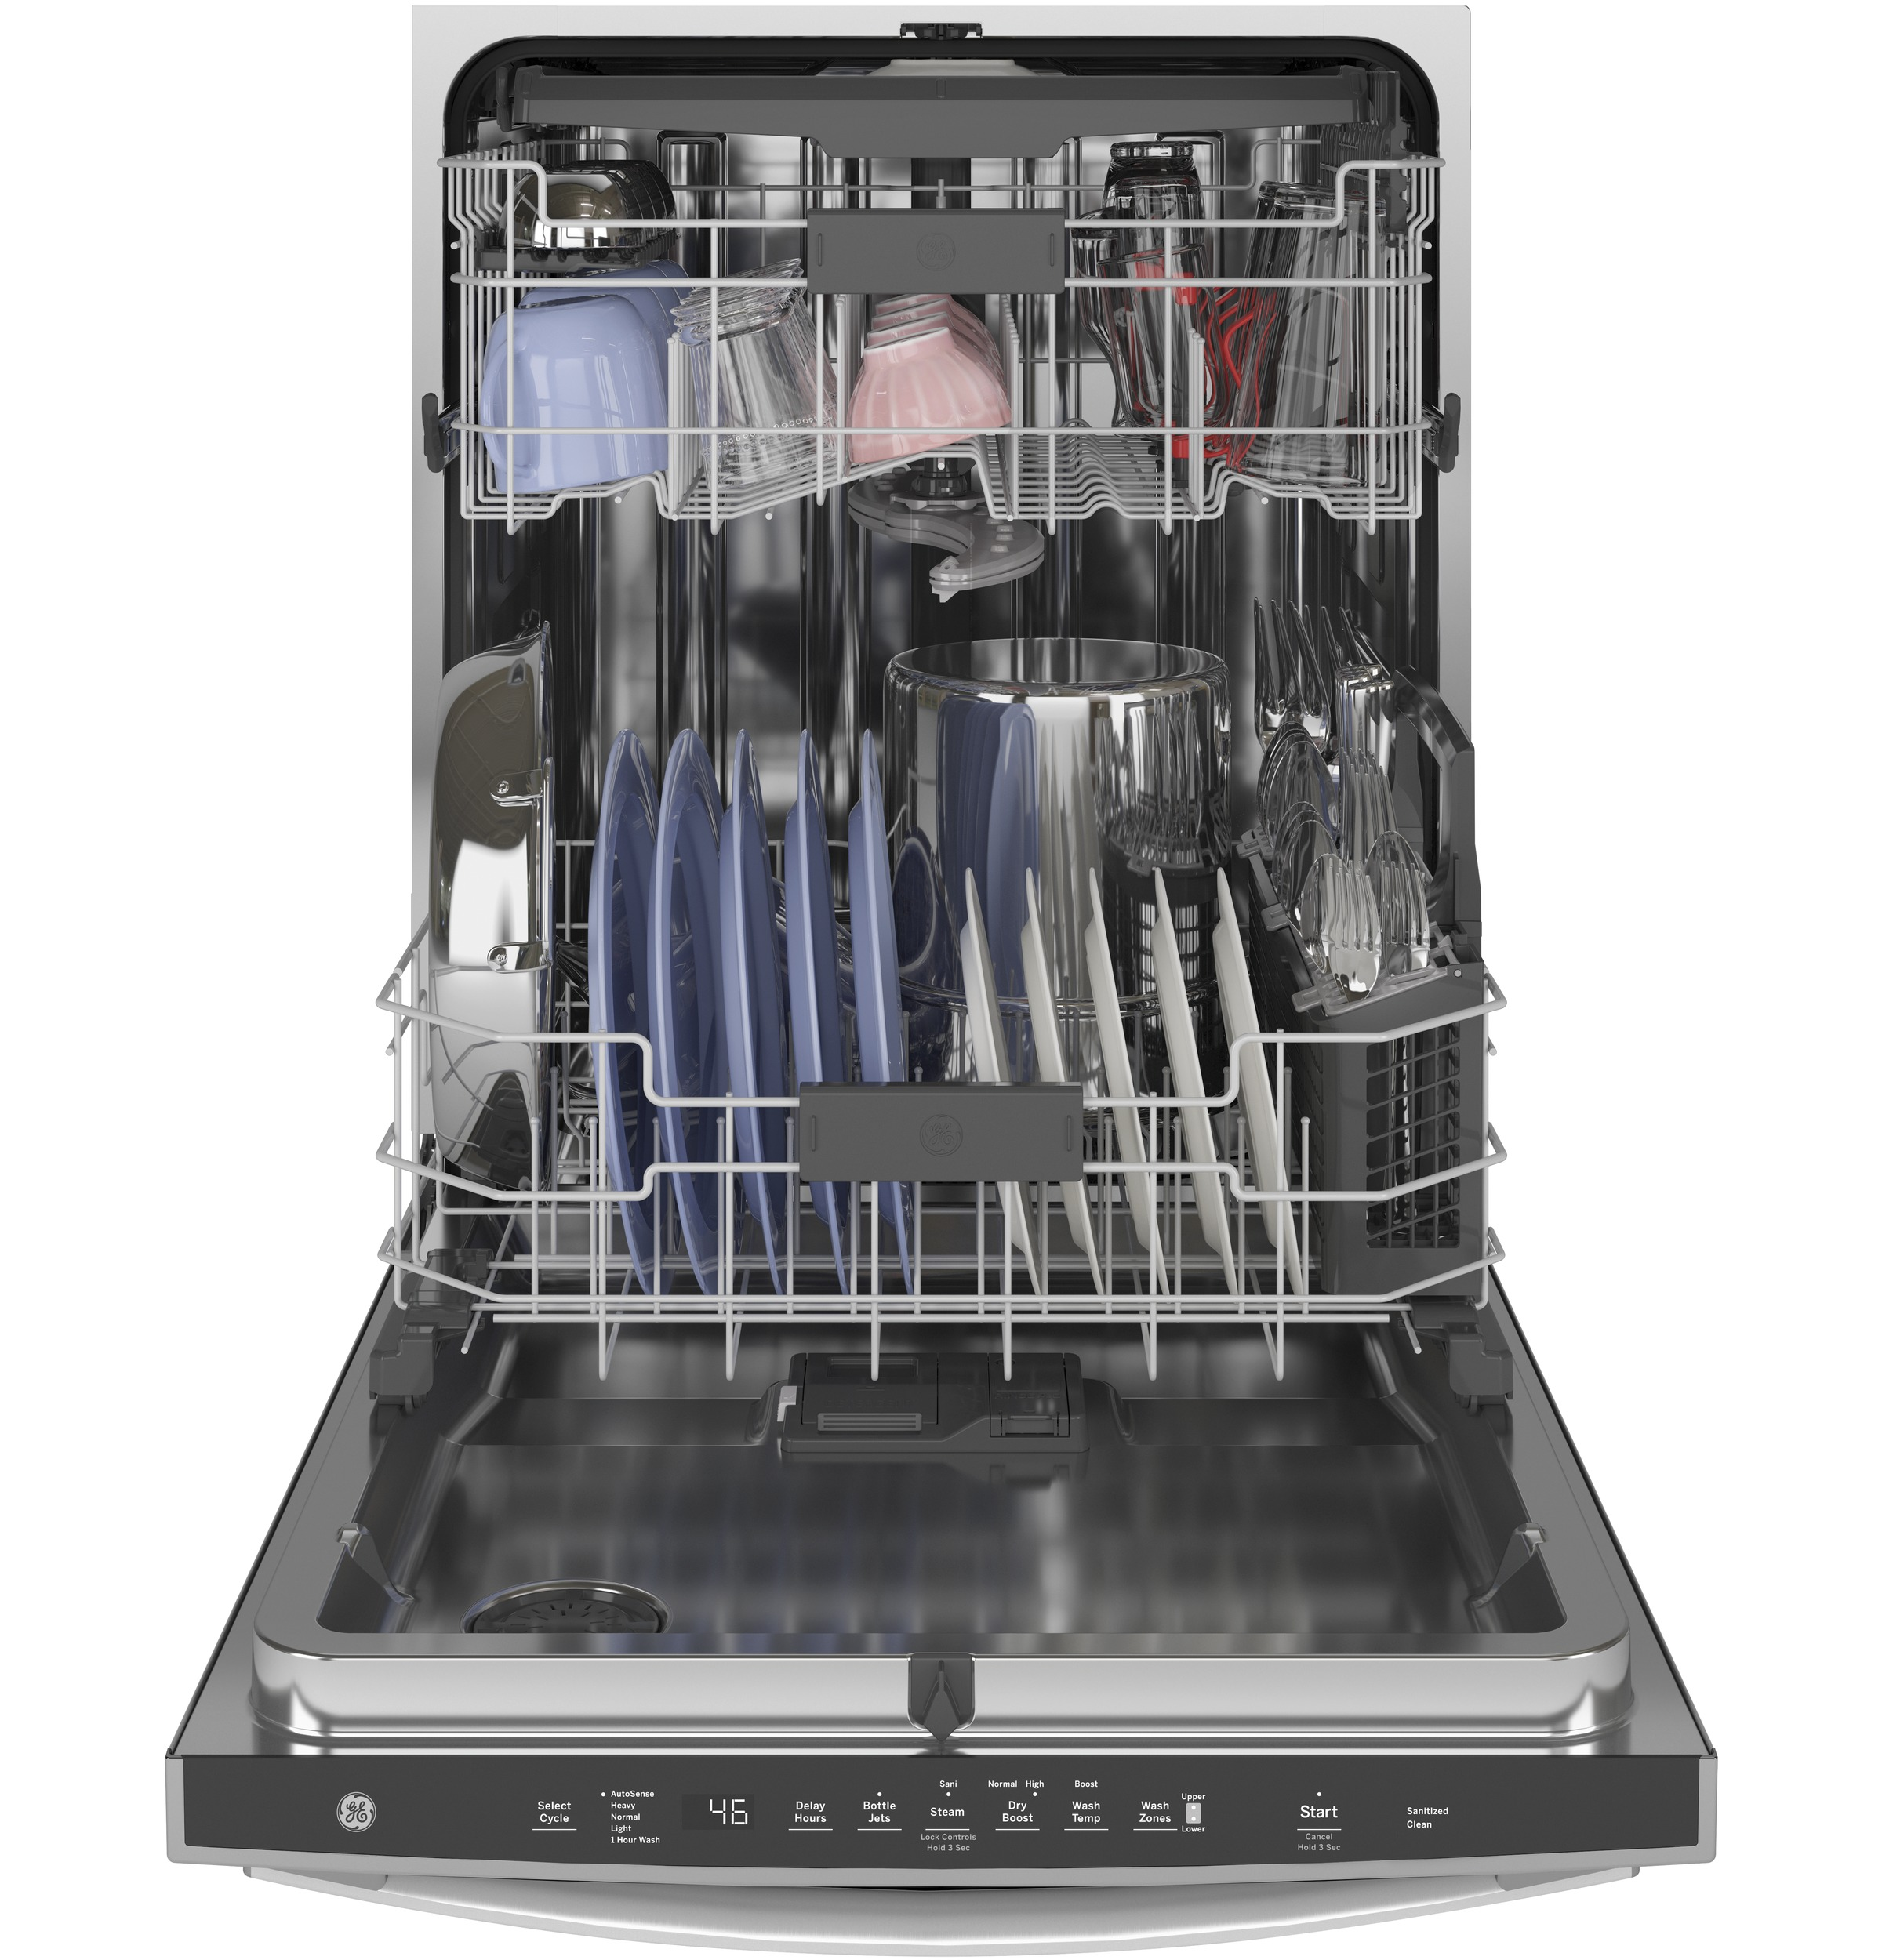 Model: GDT665SSNSS   GE GE® Top Control with Stainless Steel Interior Dishwasher with Sanitize Cycle & Dry Boost with Fan Assist